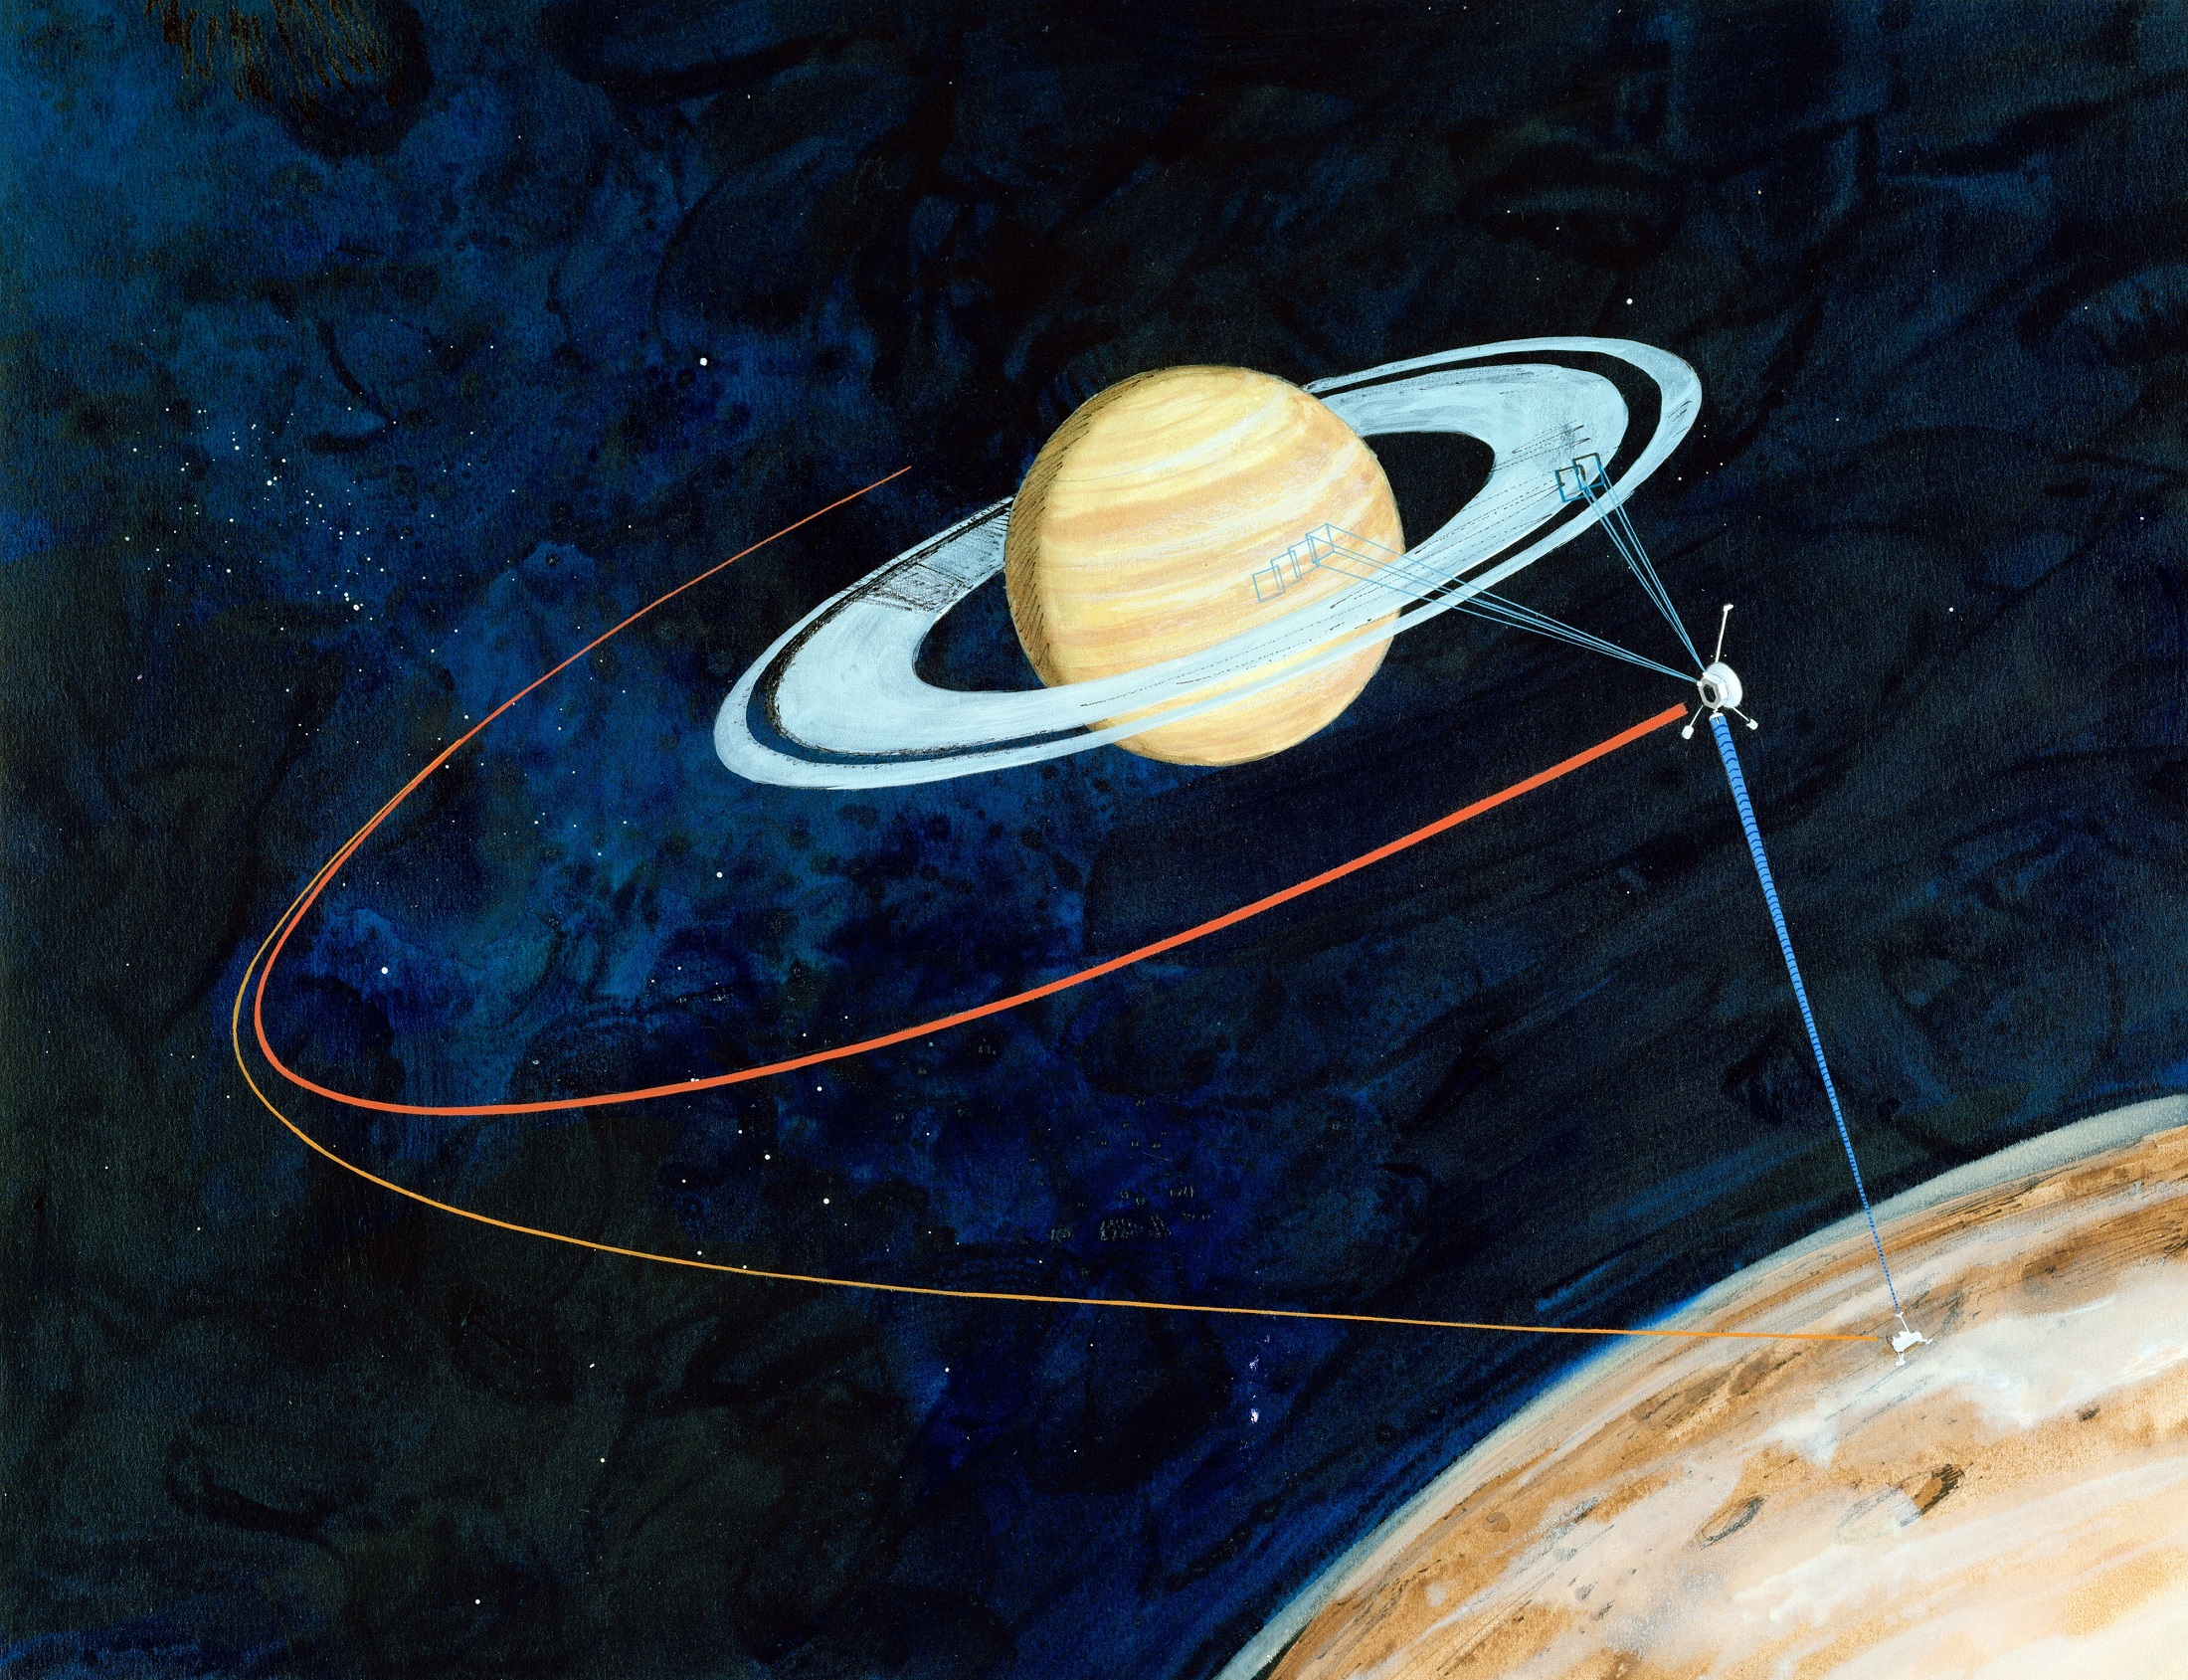 Painting of spacecraft and lander exploring Saturn and Titan.